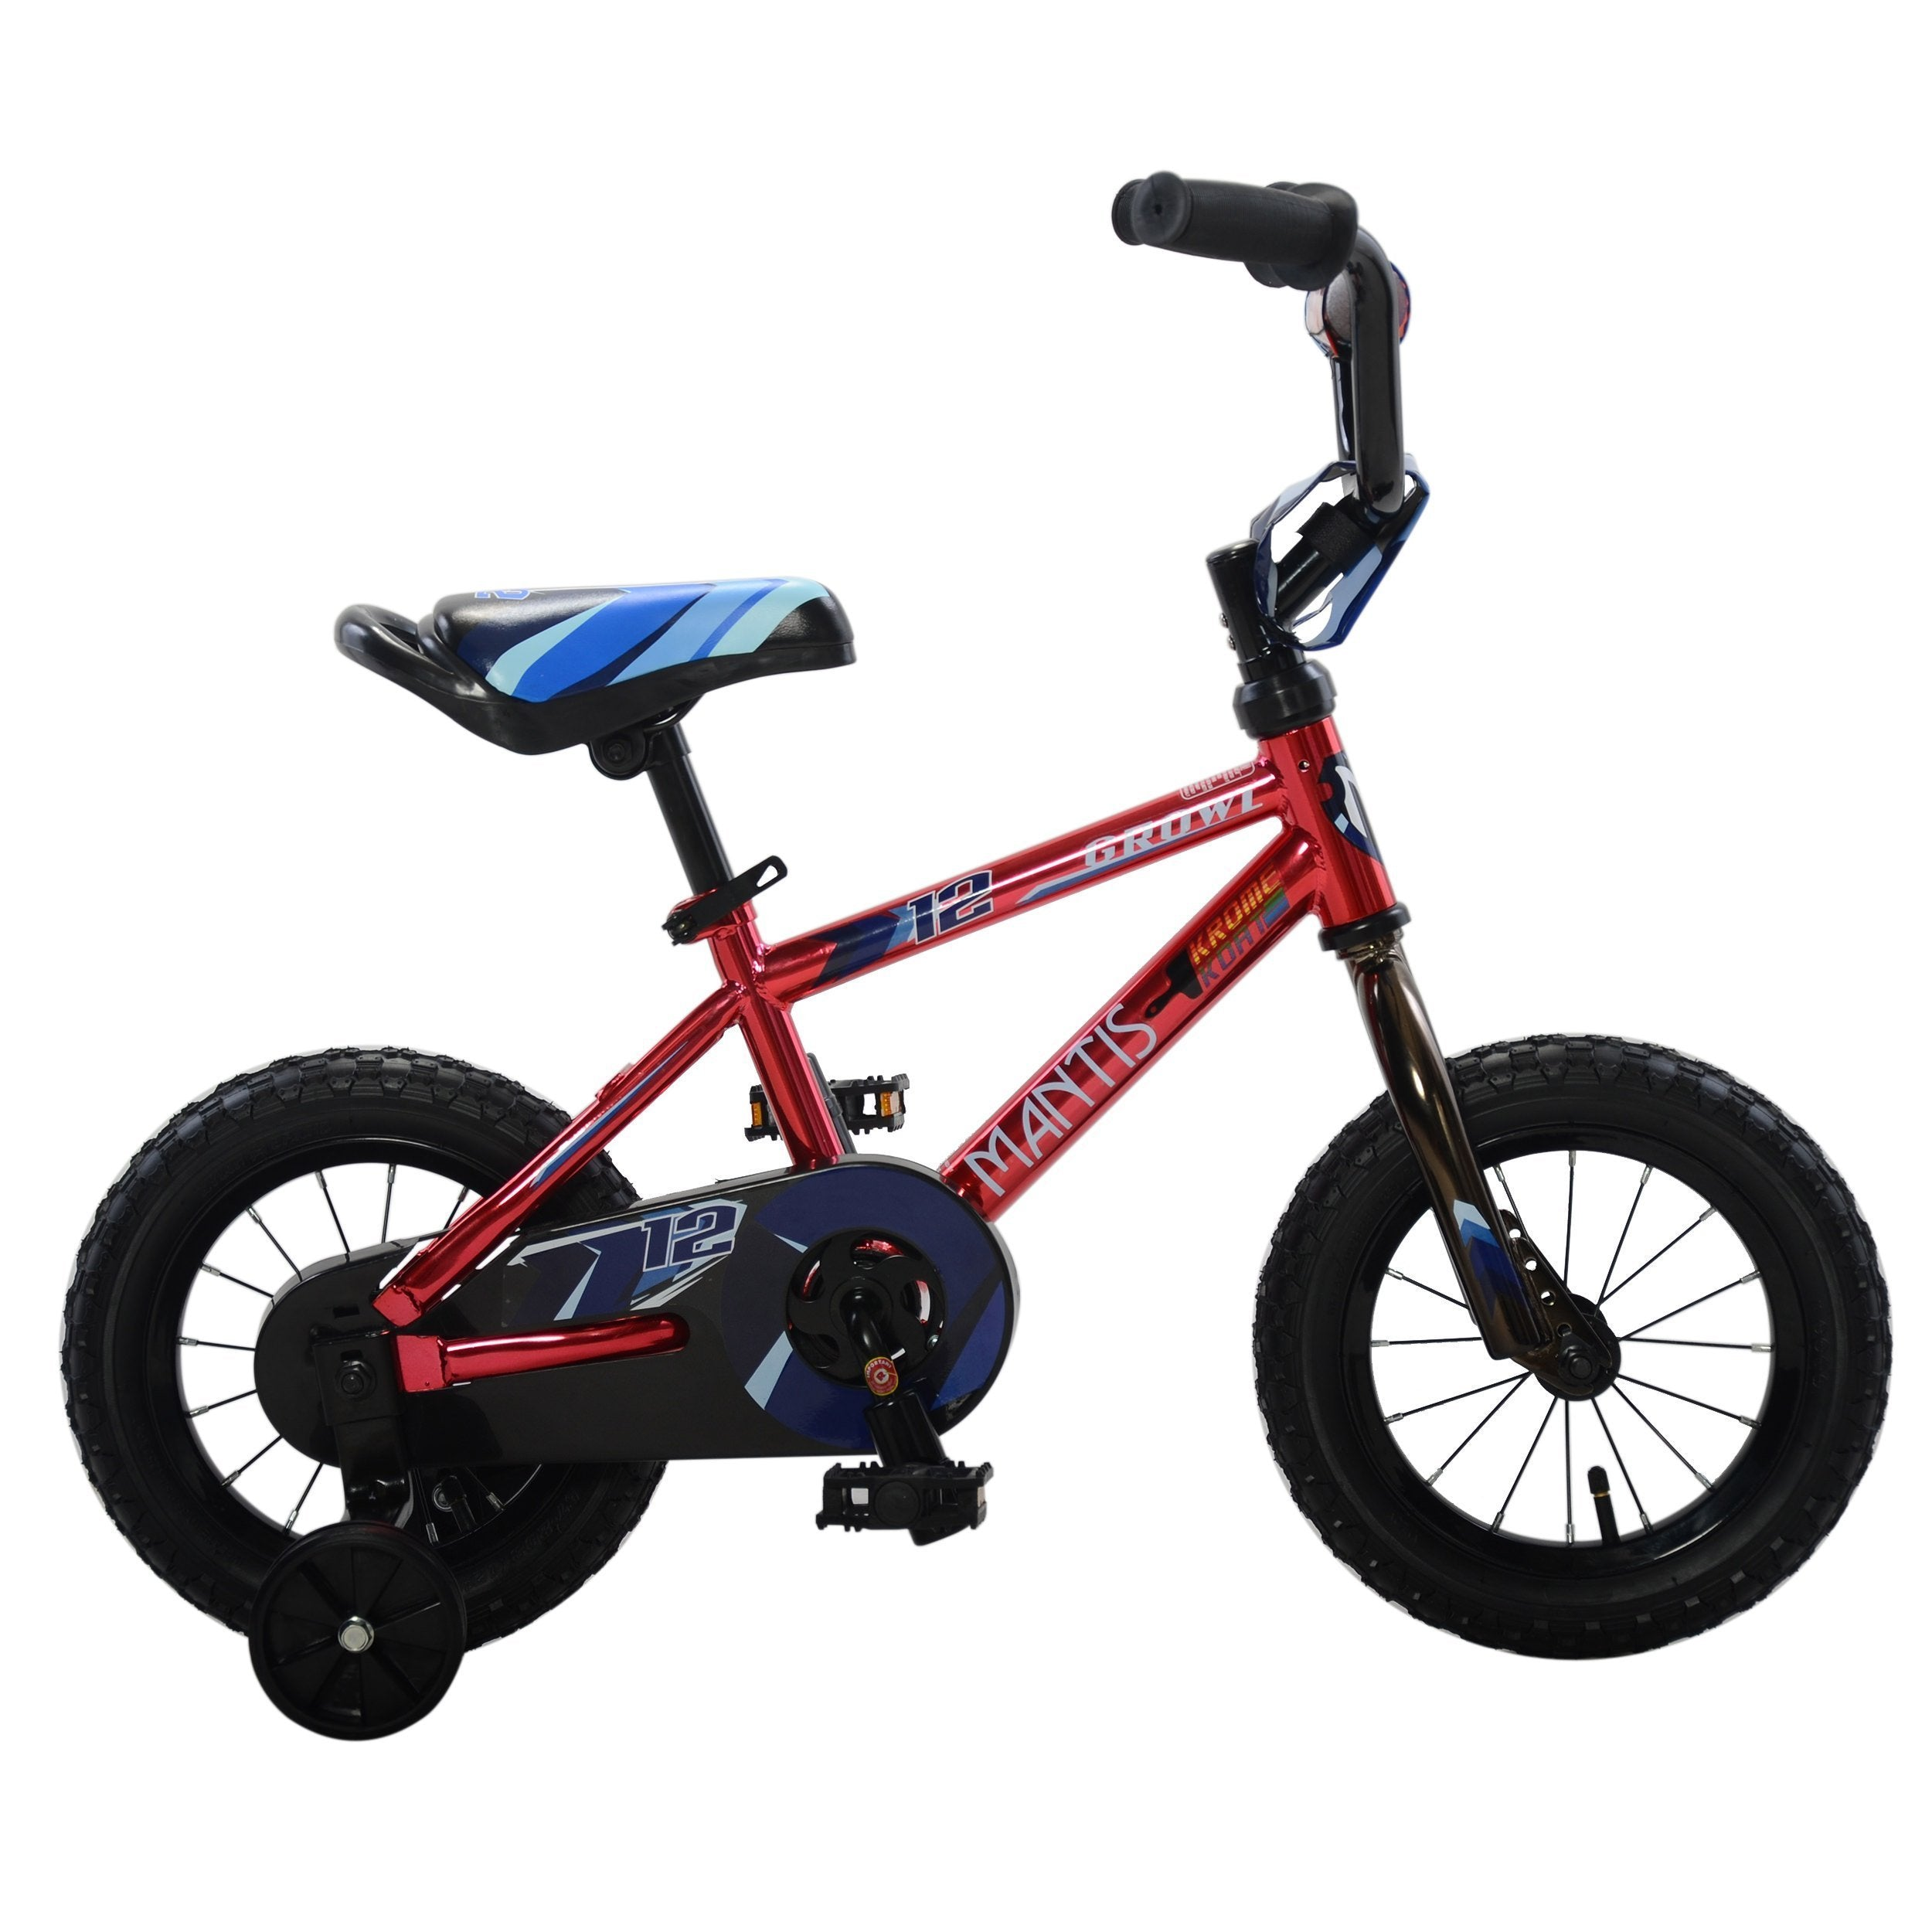 Mantis Growl Single Speed Ready2Roll Kids Bicycle - Kids Bicycle 12 Inch / Red Ridetique.com